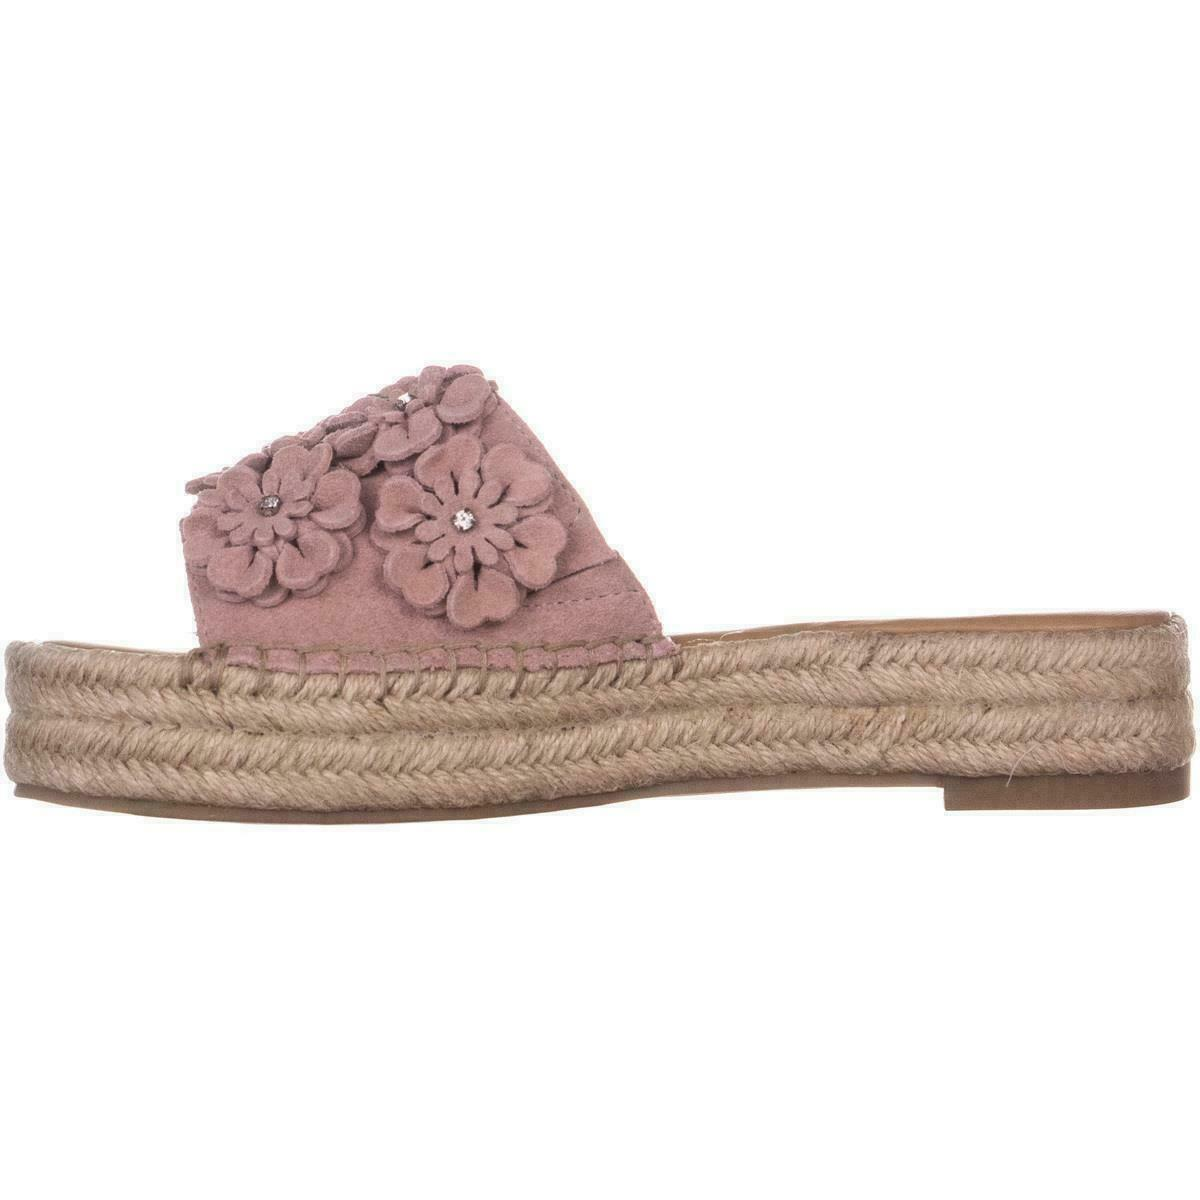 Carlos by Carlos Santana Chandler Sandals Pink Blush, Size 7.5 M